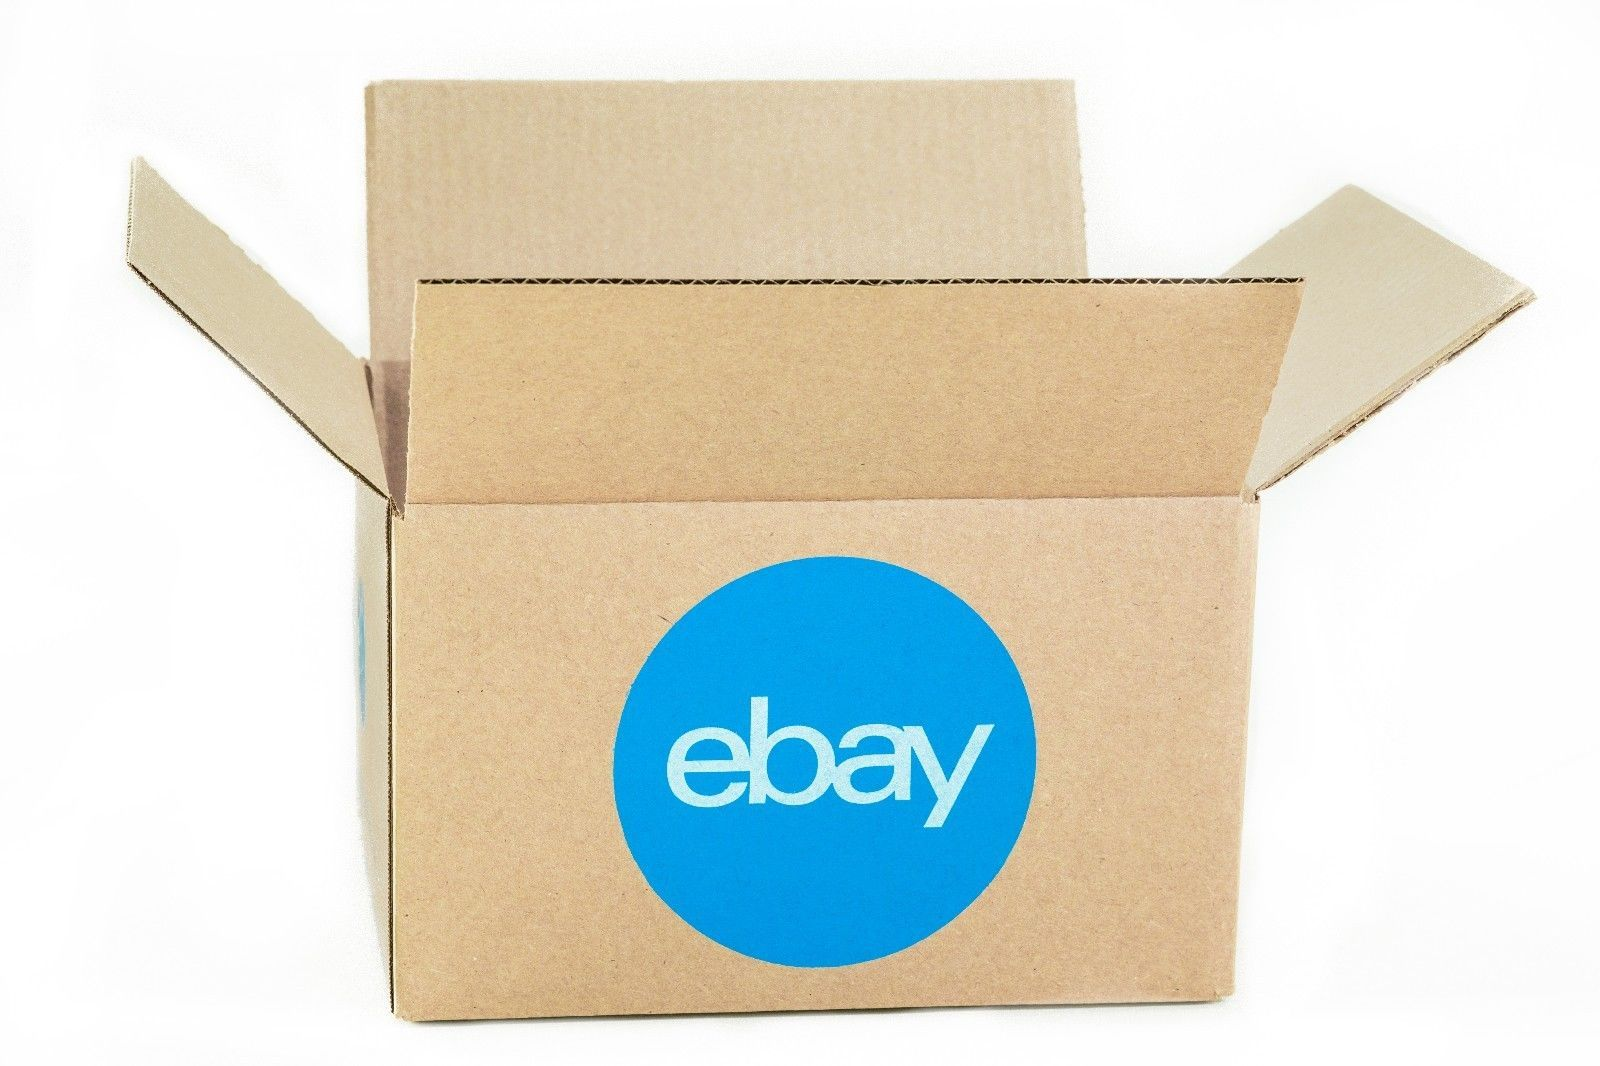 Ebay Branded Boxes With Blue 2 Color Logo 10 X 8 X 6 Ebay Ebay Cardboard Box Selling On Ebay